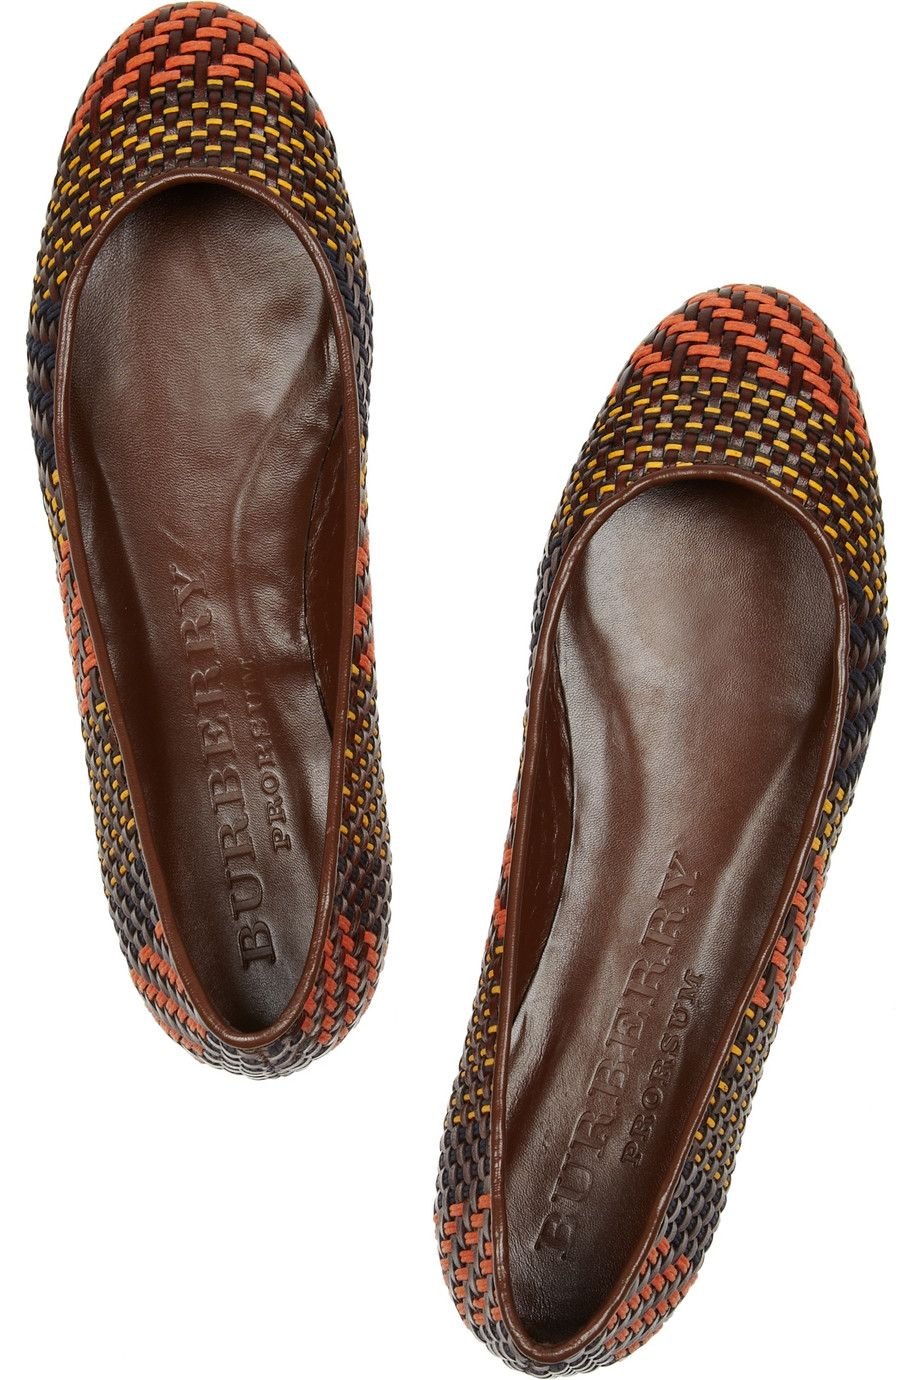 f9034b69973 ~ Living a Beautiful Life ~ Burberry Prorsum Woven Leather and Raffia Ballet  Flats in Multicolor (brown)